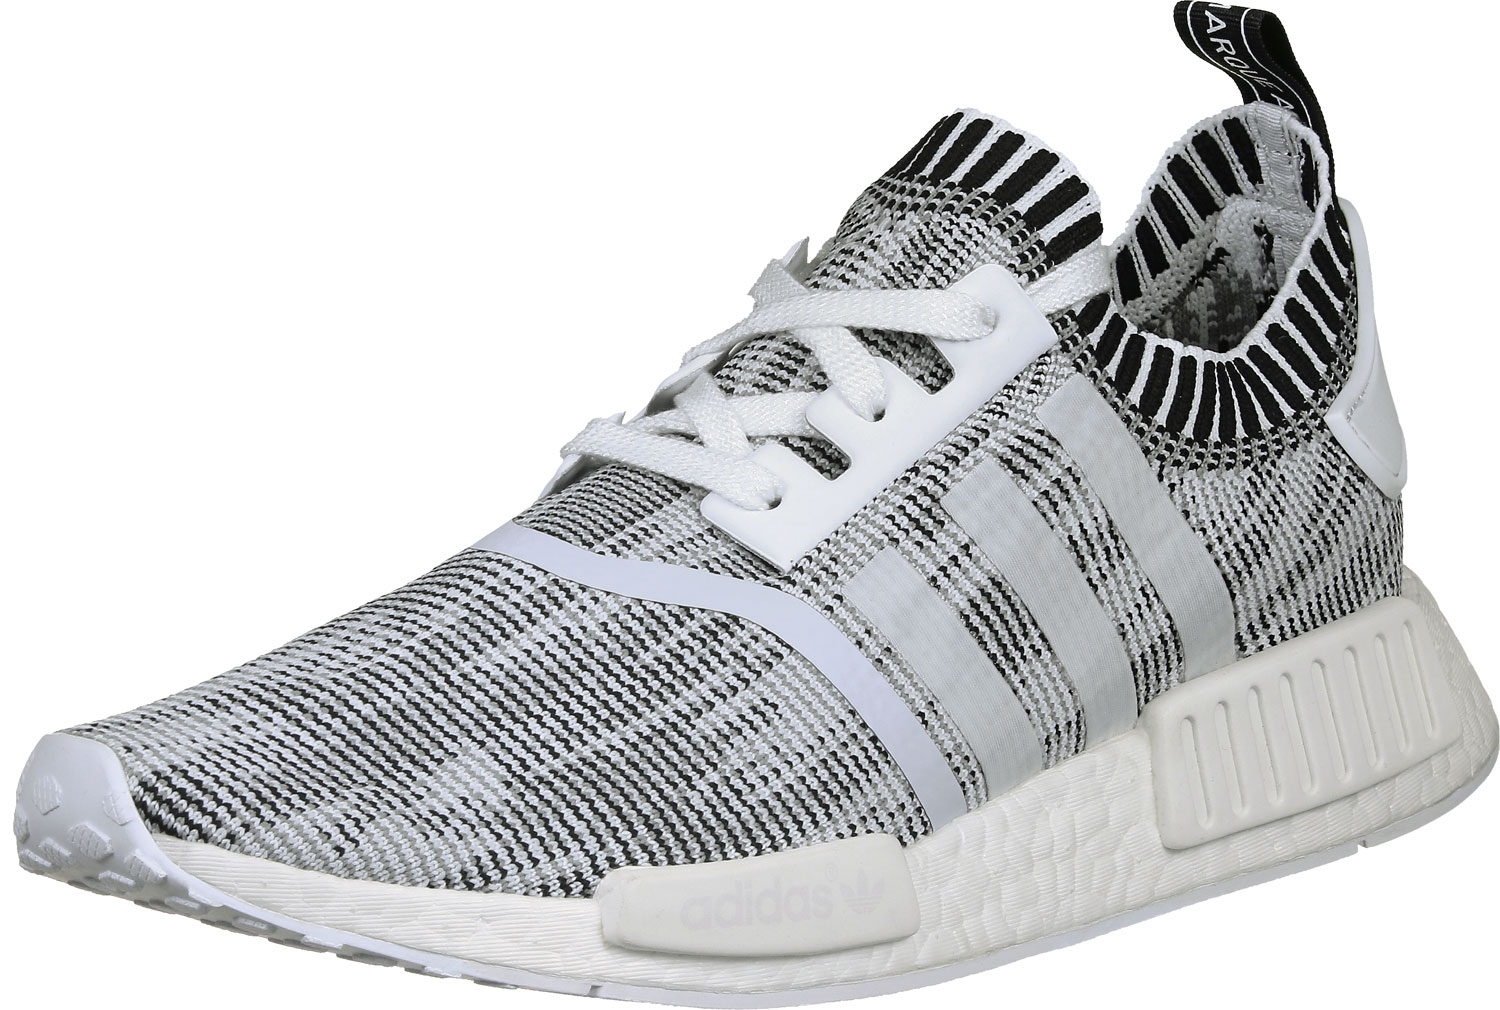 adidas NMD R1 PK - Sneakers Low at